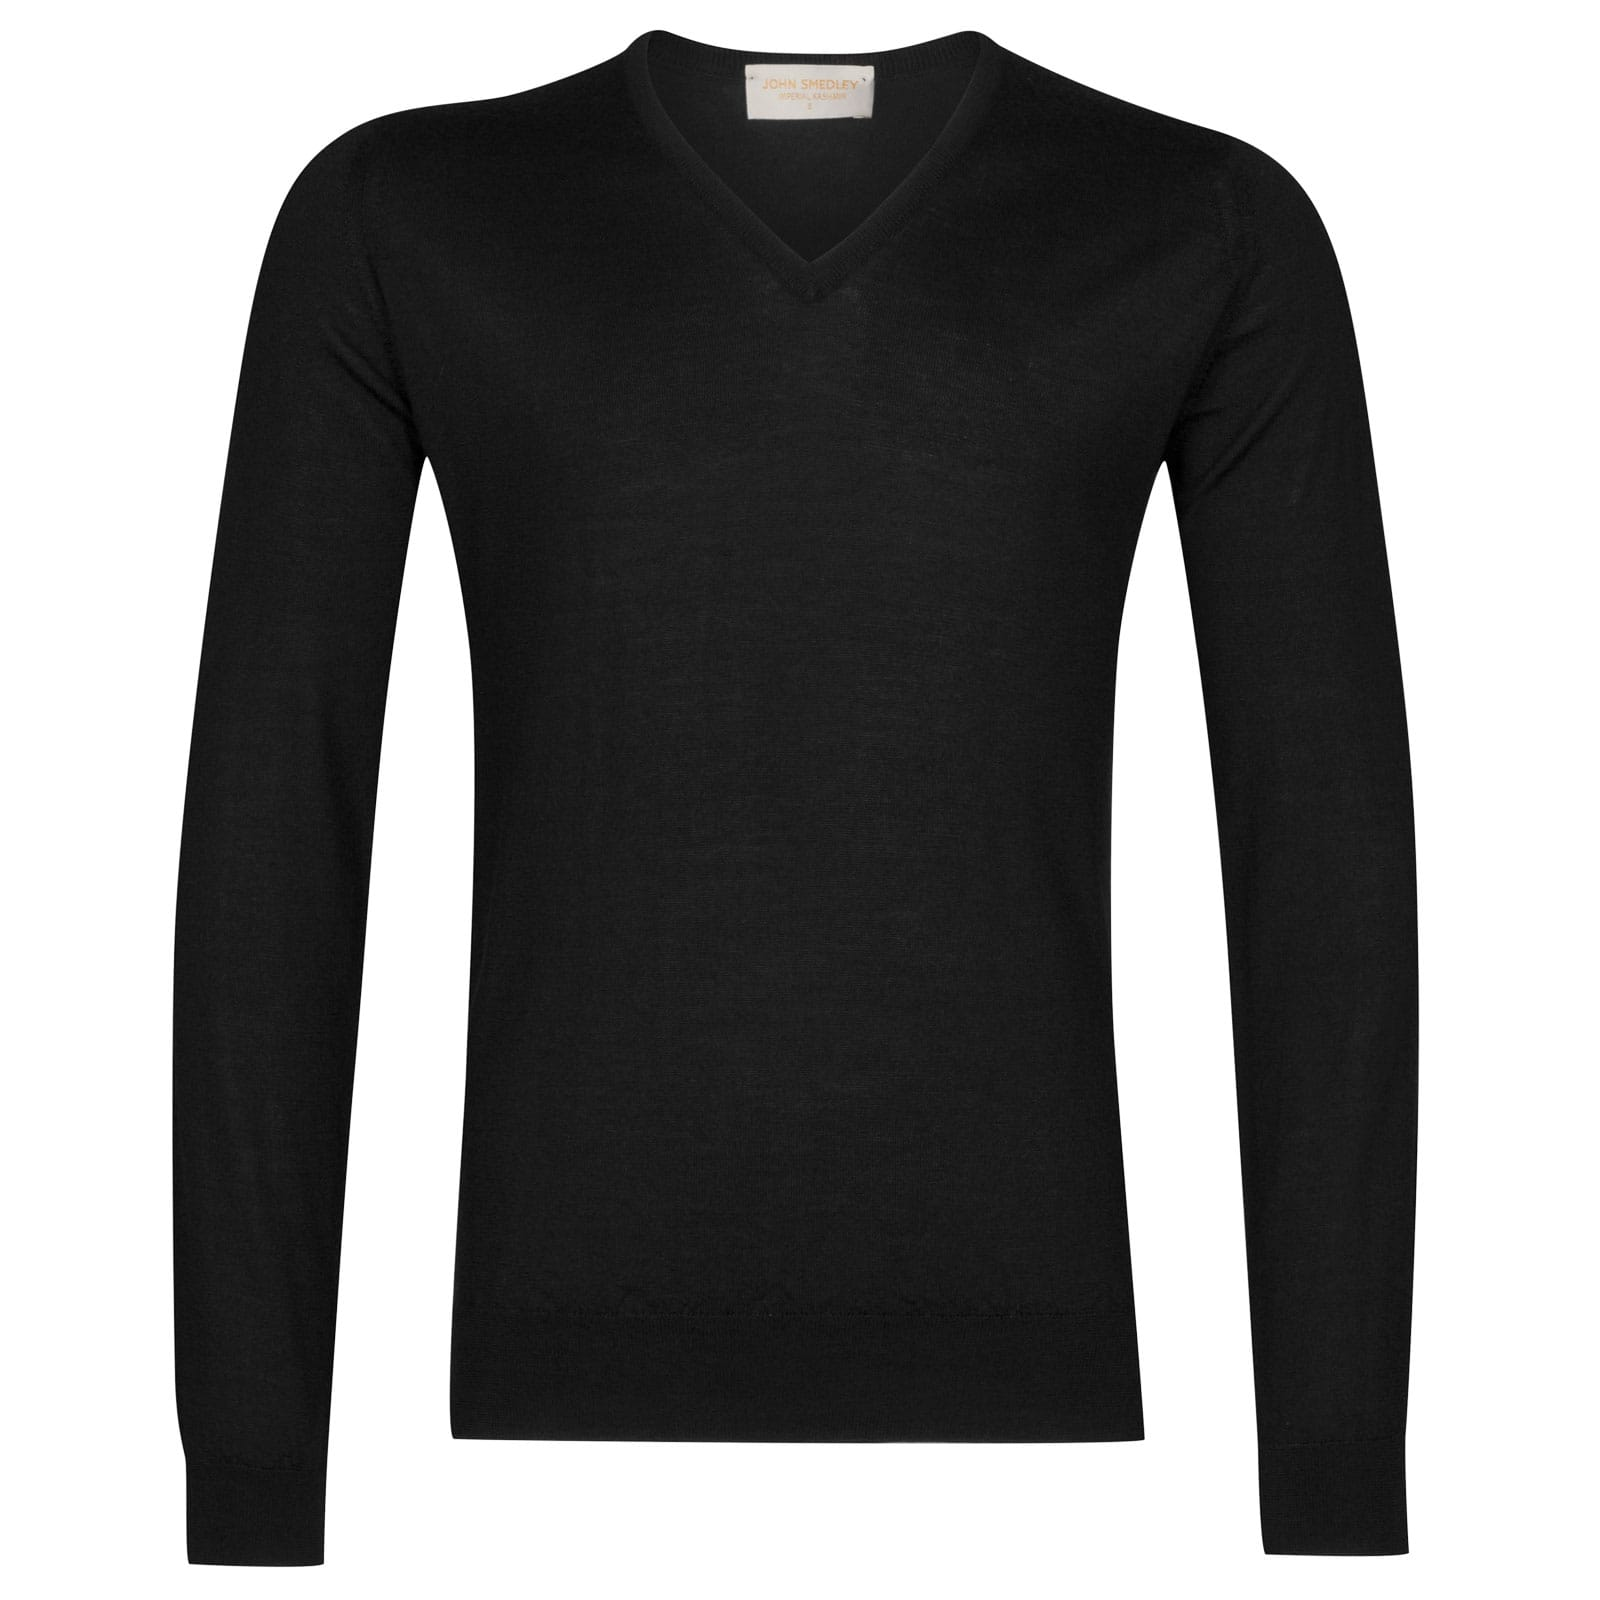 John Smedley Curlwell Cashmere and Silk Pullover in Black-XL